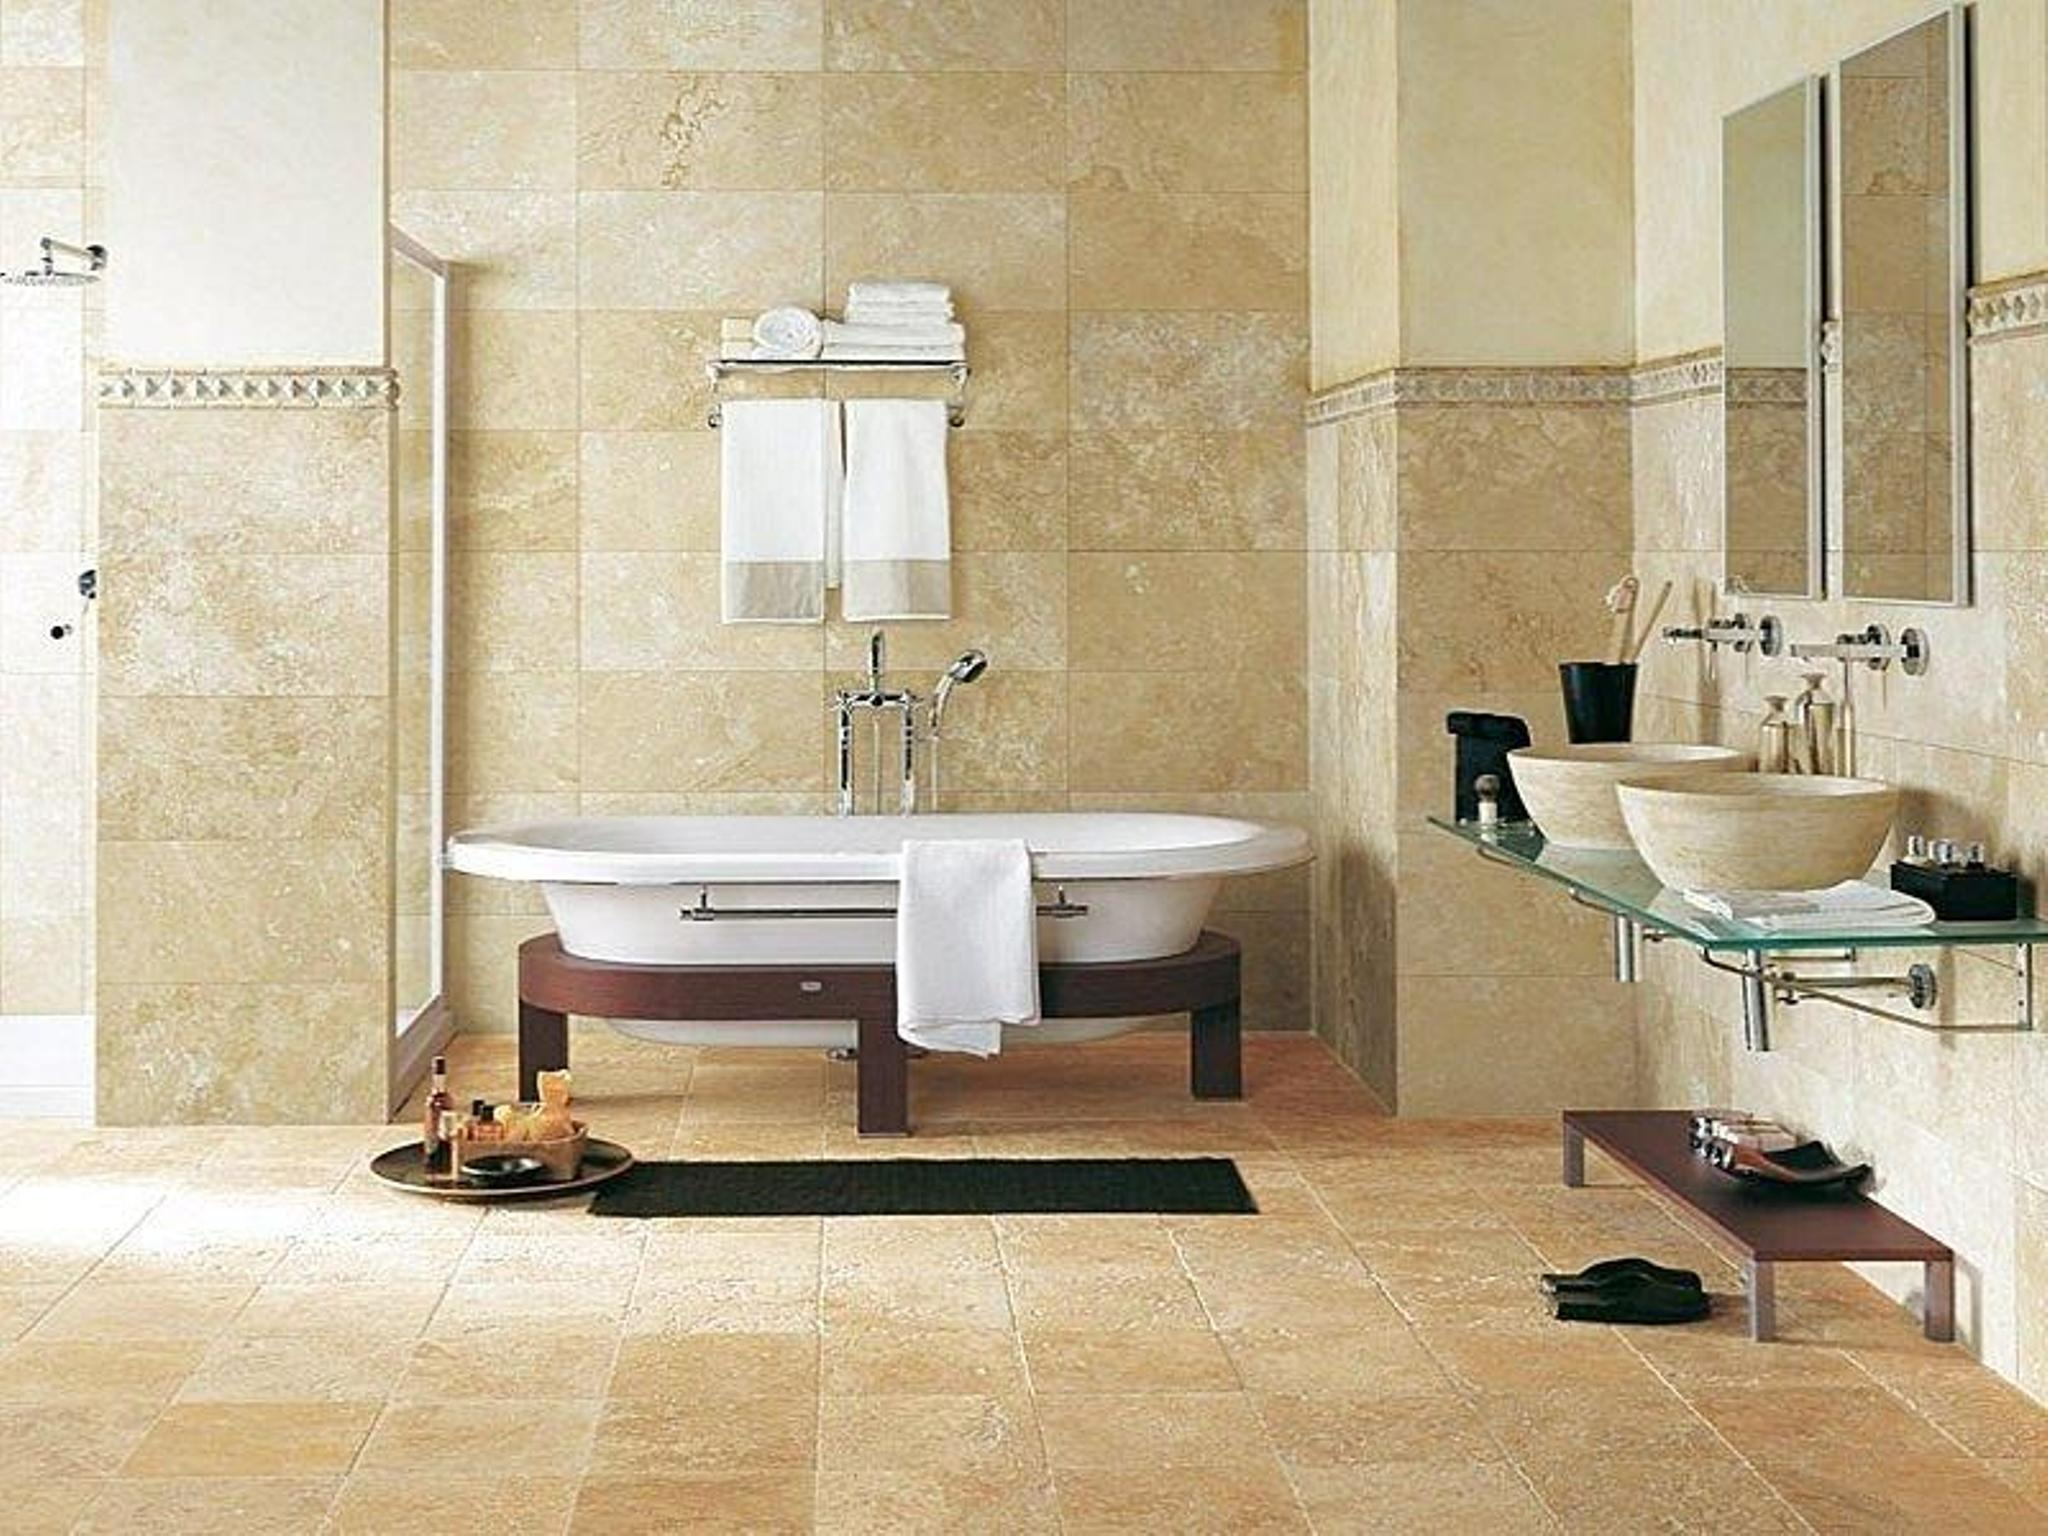 25 Amazing Italian Bathroom Tile Designs Ideas And Pictures: 20 Pictures And Ideas Of Travertine Tile Designs For Bathrooms